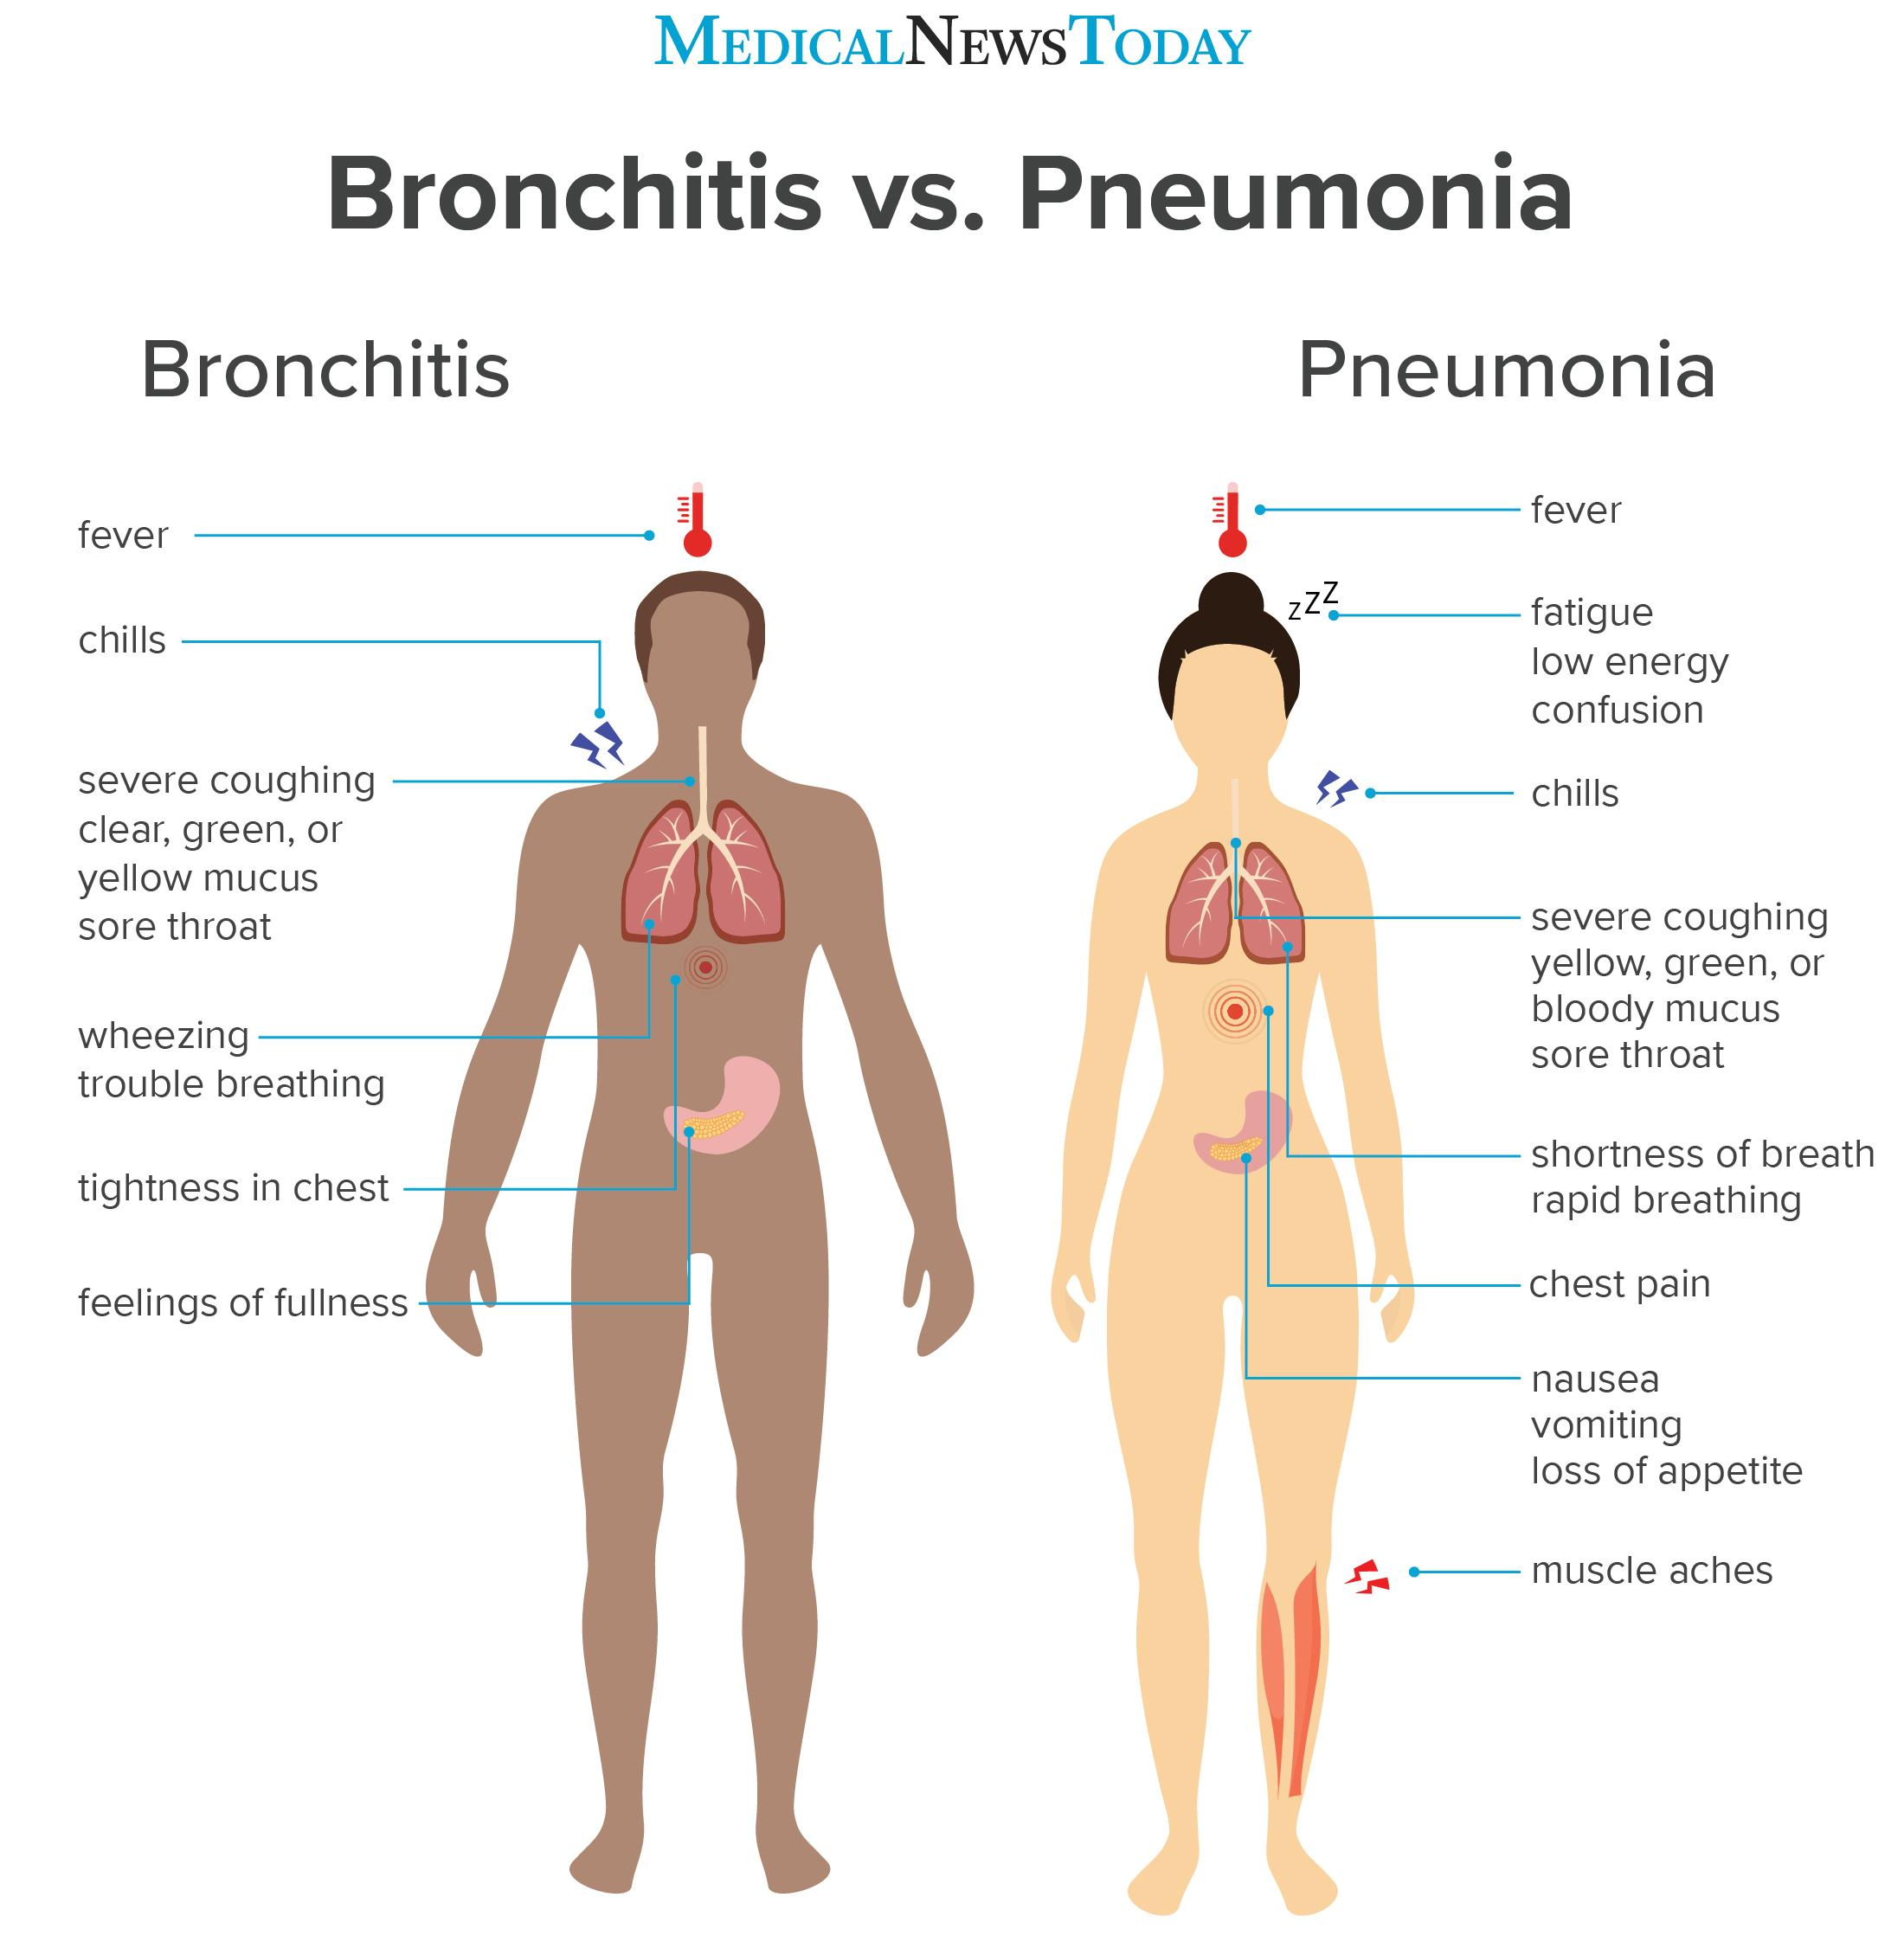 Bronchitis vs. pneumonia: How to tell